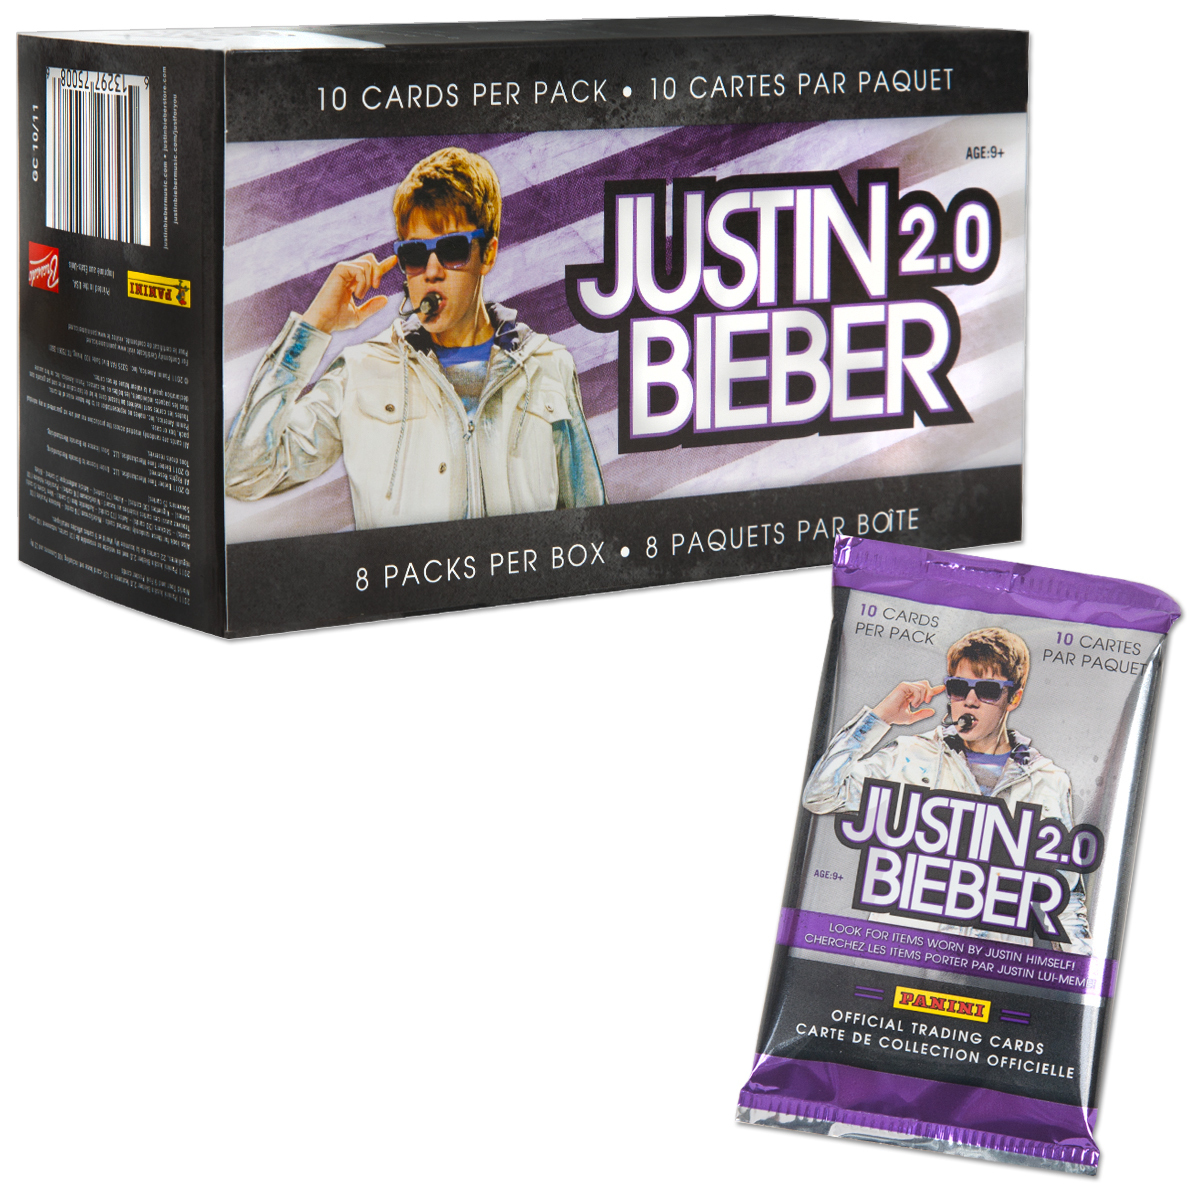 Justin Bieber 2.0 Trading Cards - 8 Pack Box